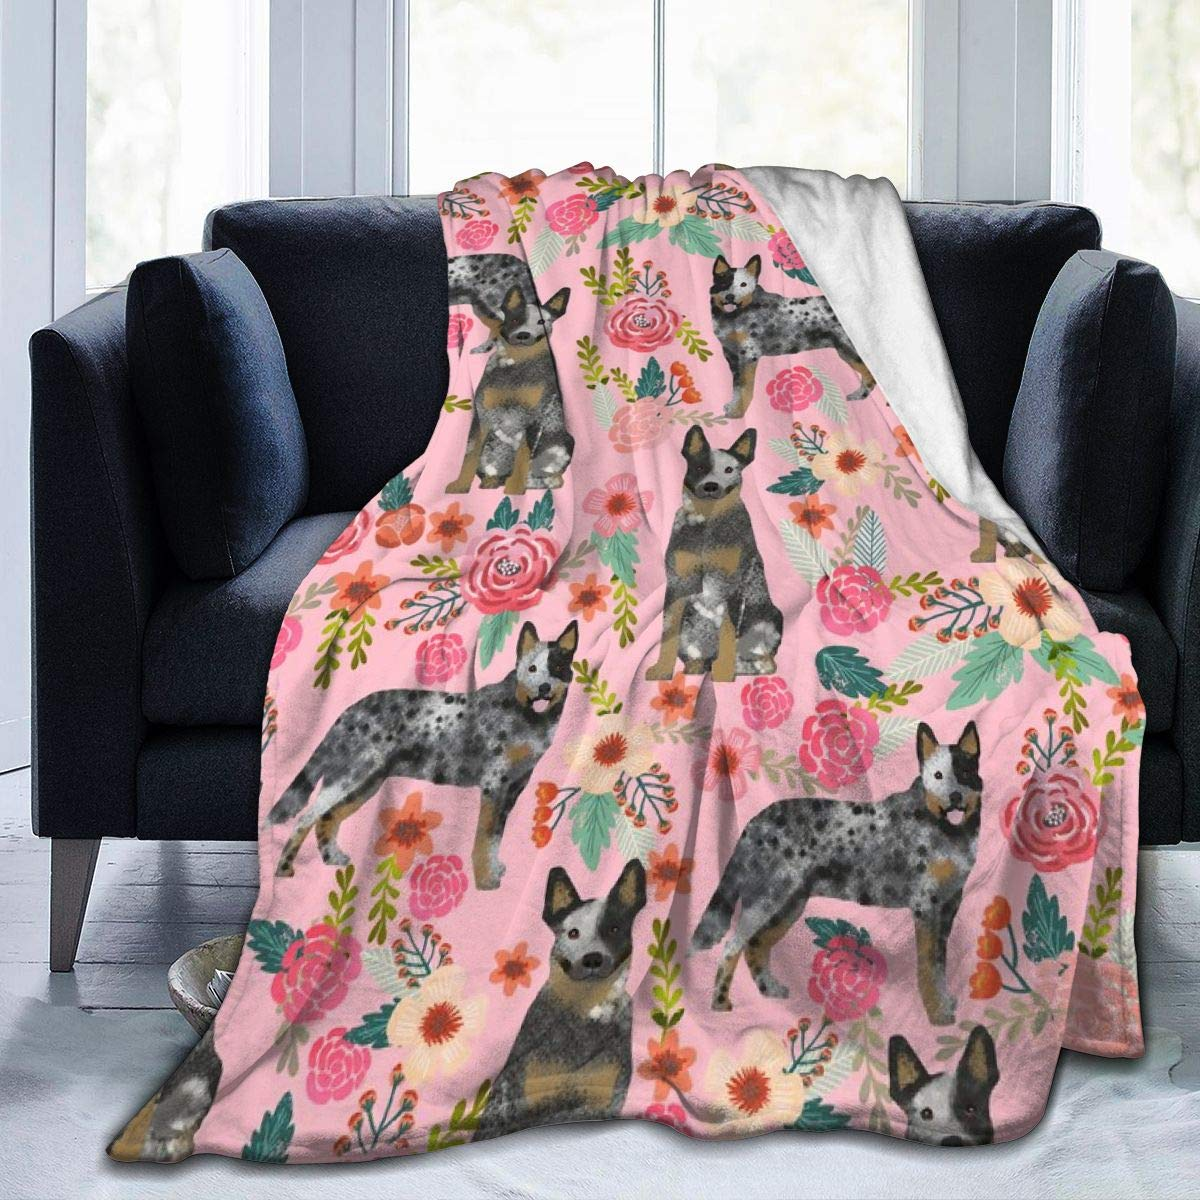 Beauty-Design Australian Cattle Dog Florals Pink Fleece Blanket Soft Warm Throws Blankets for Sofa Home Bed Car Travel Office – Blanket Bedspread 60 x 50Inch